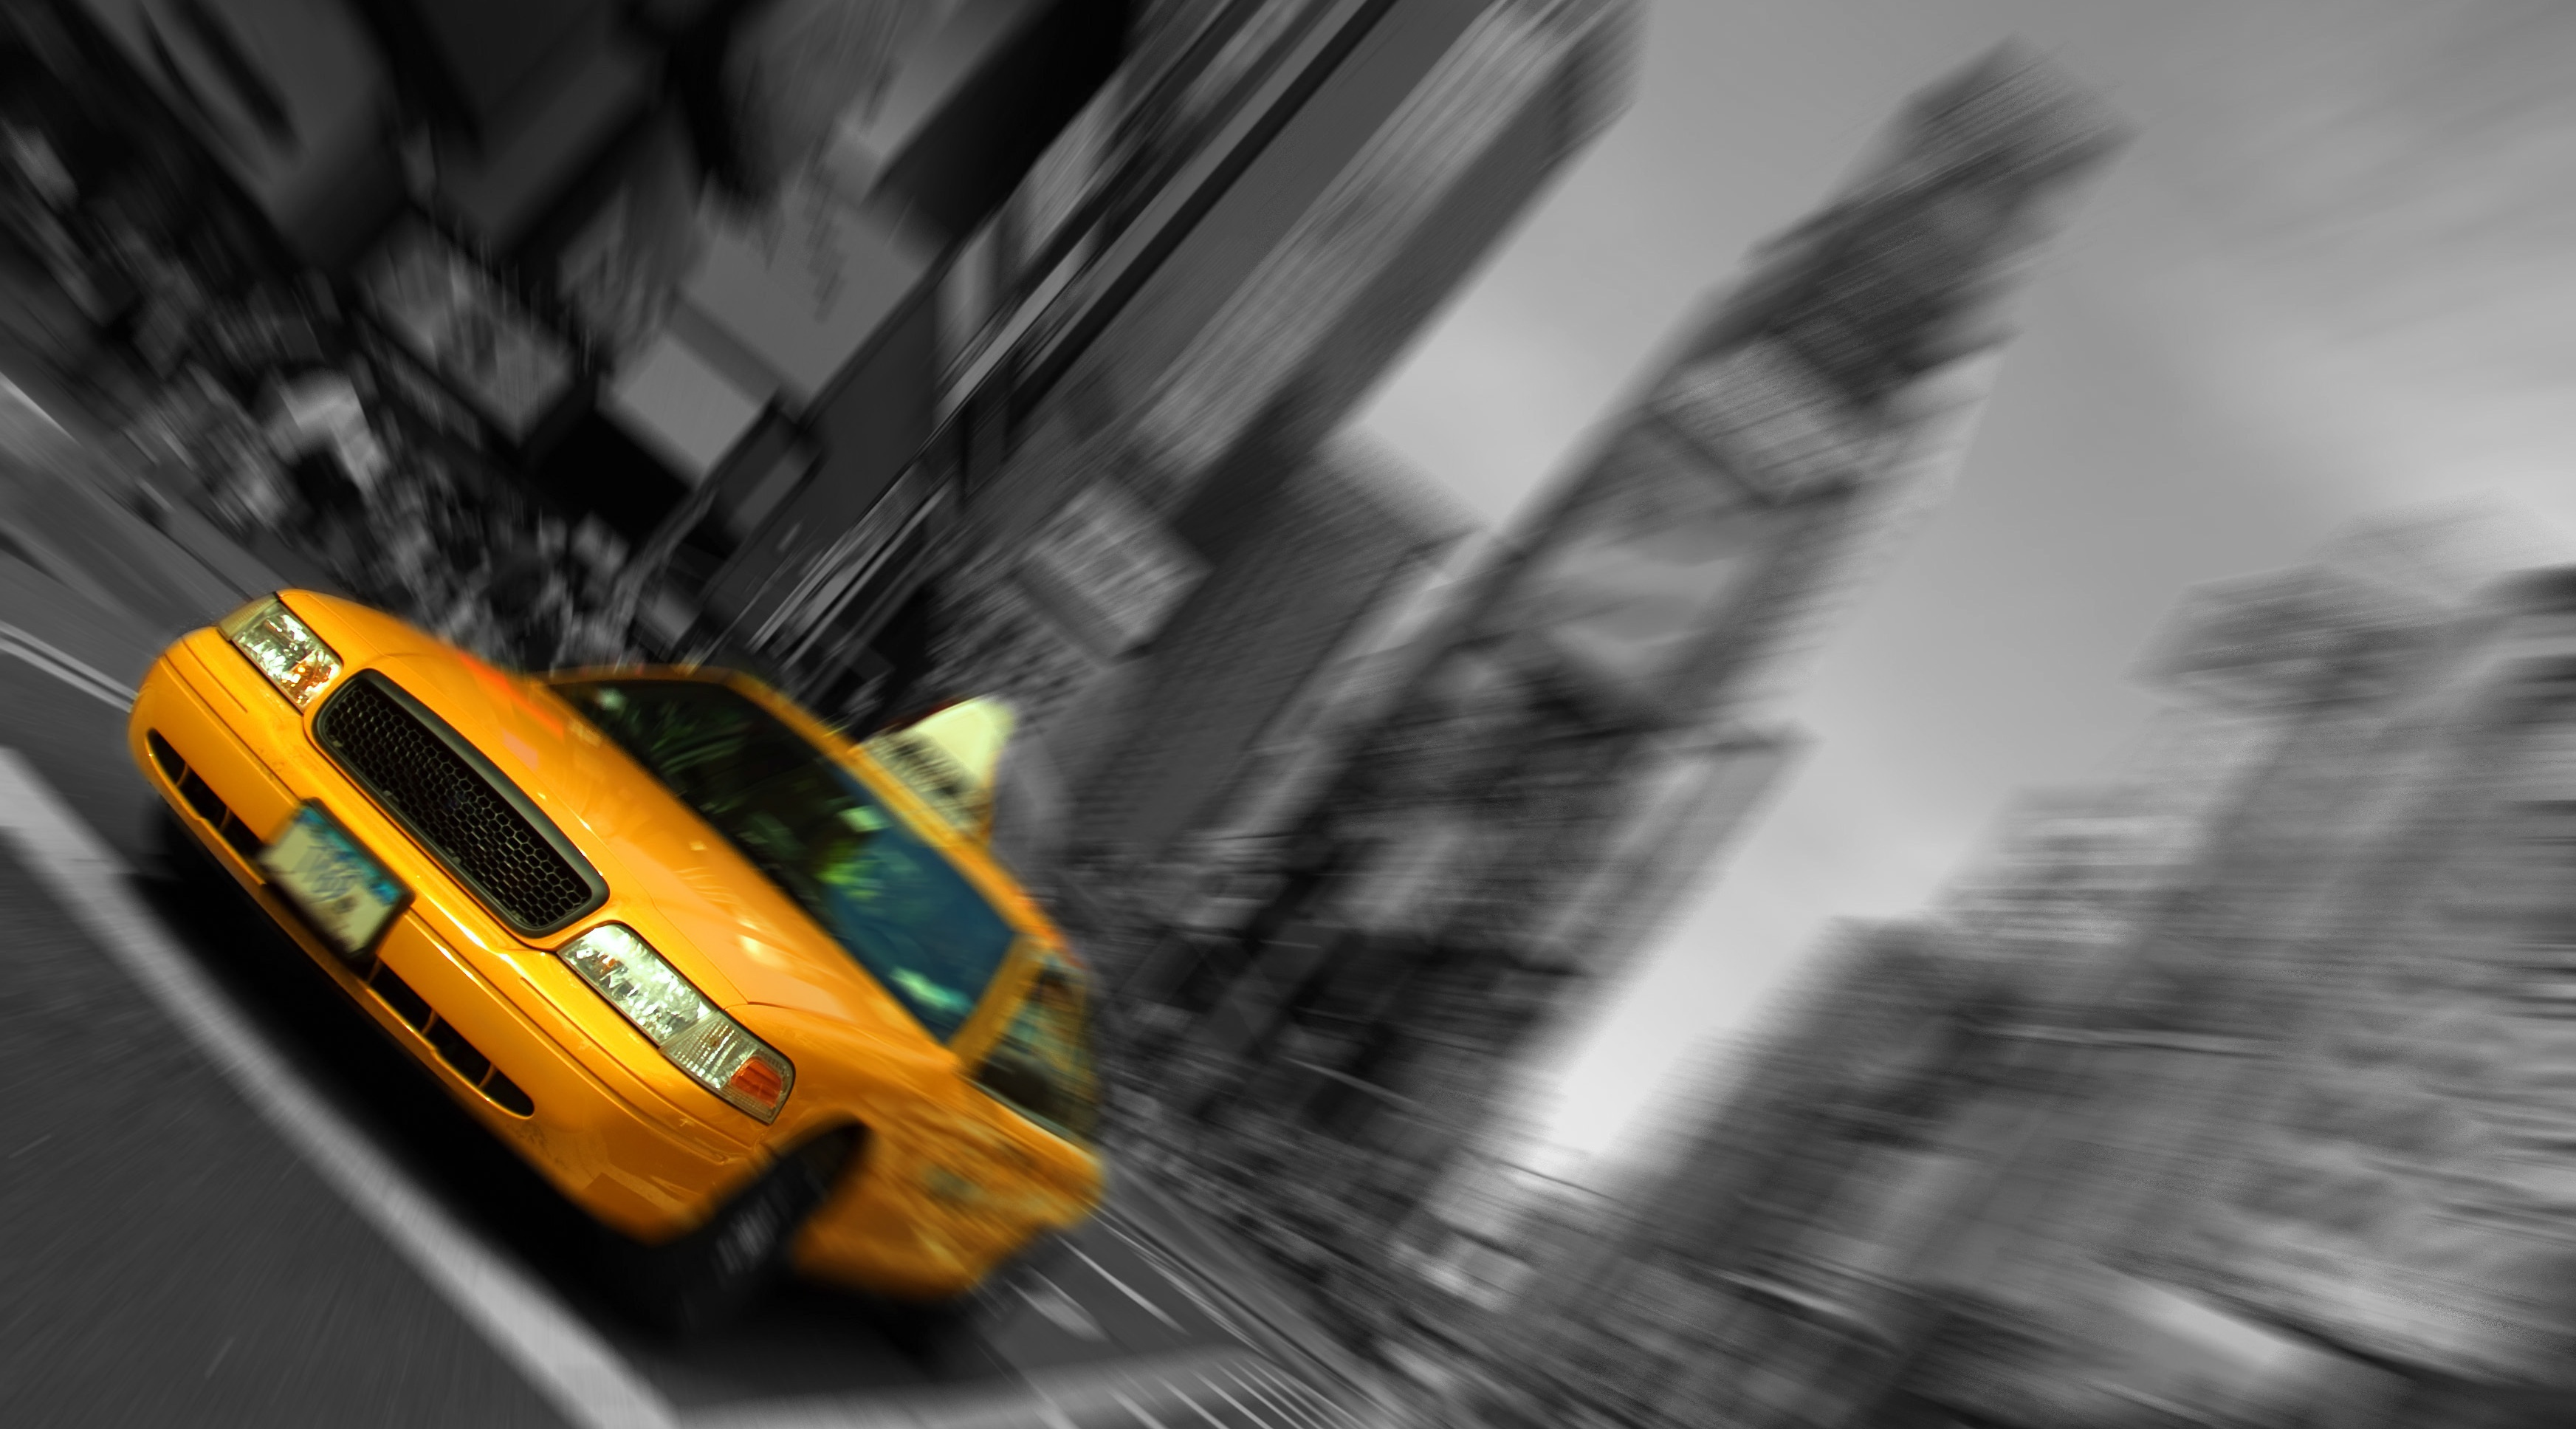 Car Slideshow Wallpaper 10 Taxi Hd Wallpapers Backgrounds Wallpaper Abyss